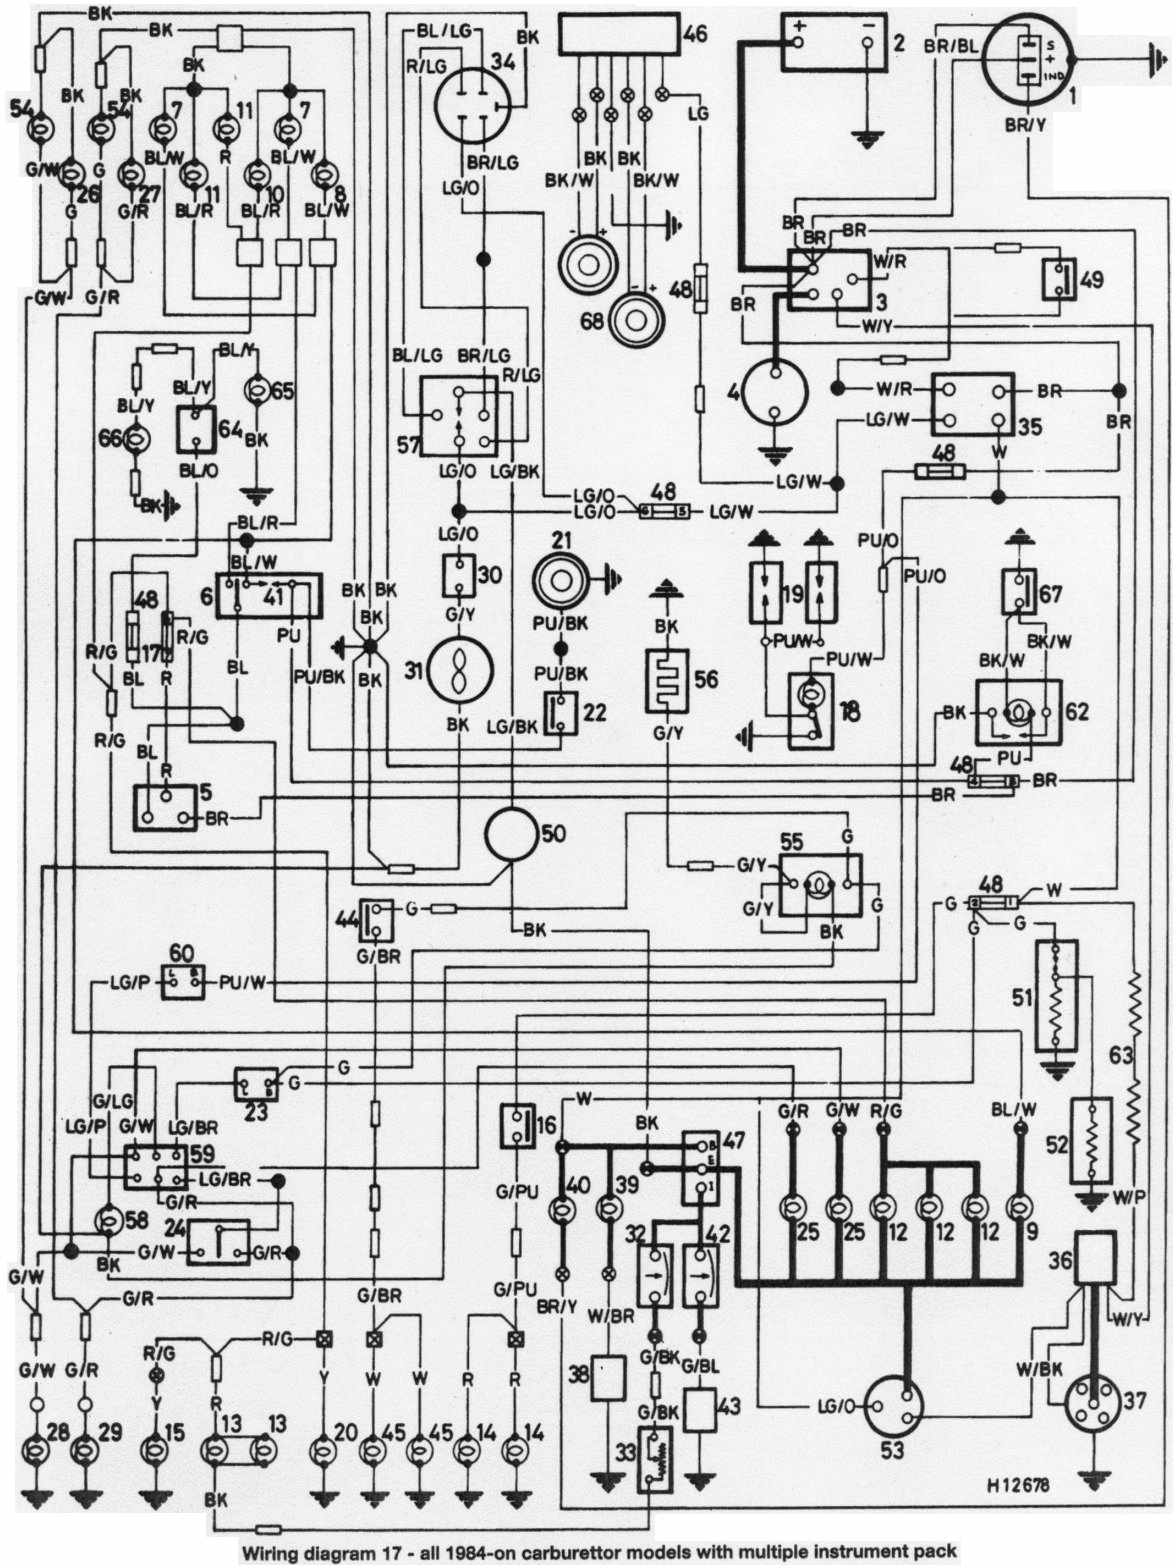 Ca18det Wiring Diagram Page 3 And Schematics Exelent Photo Simple